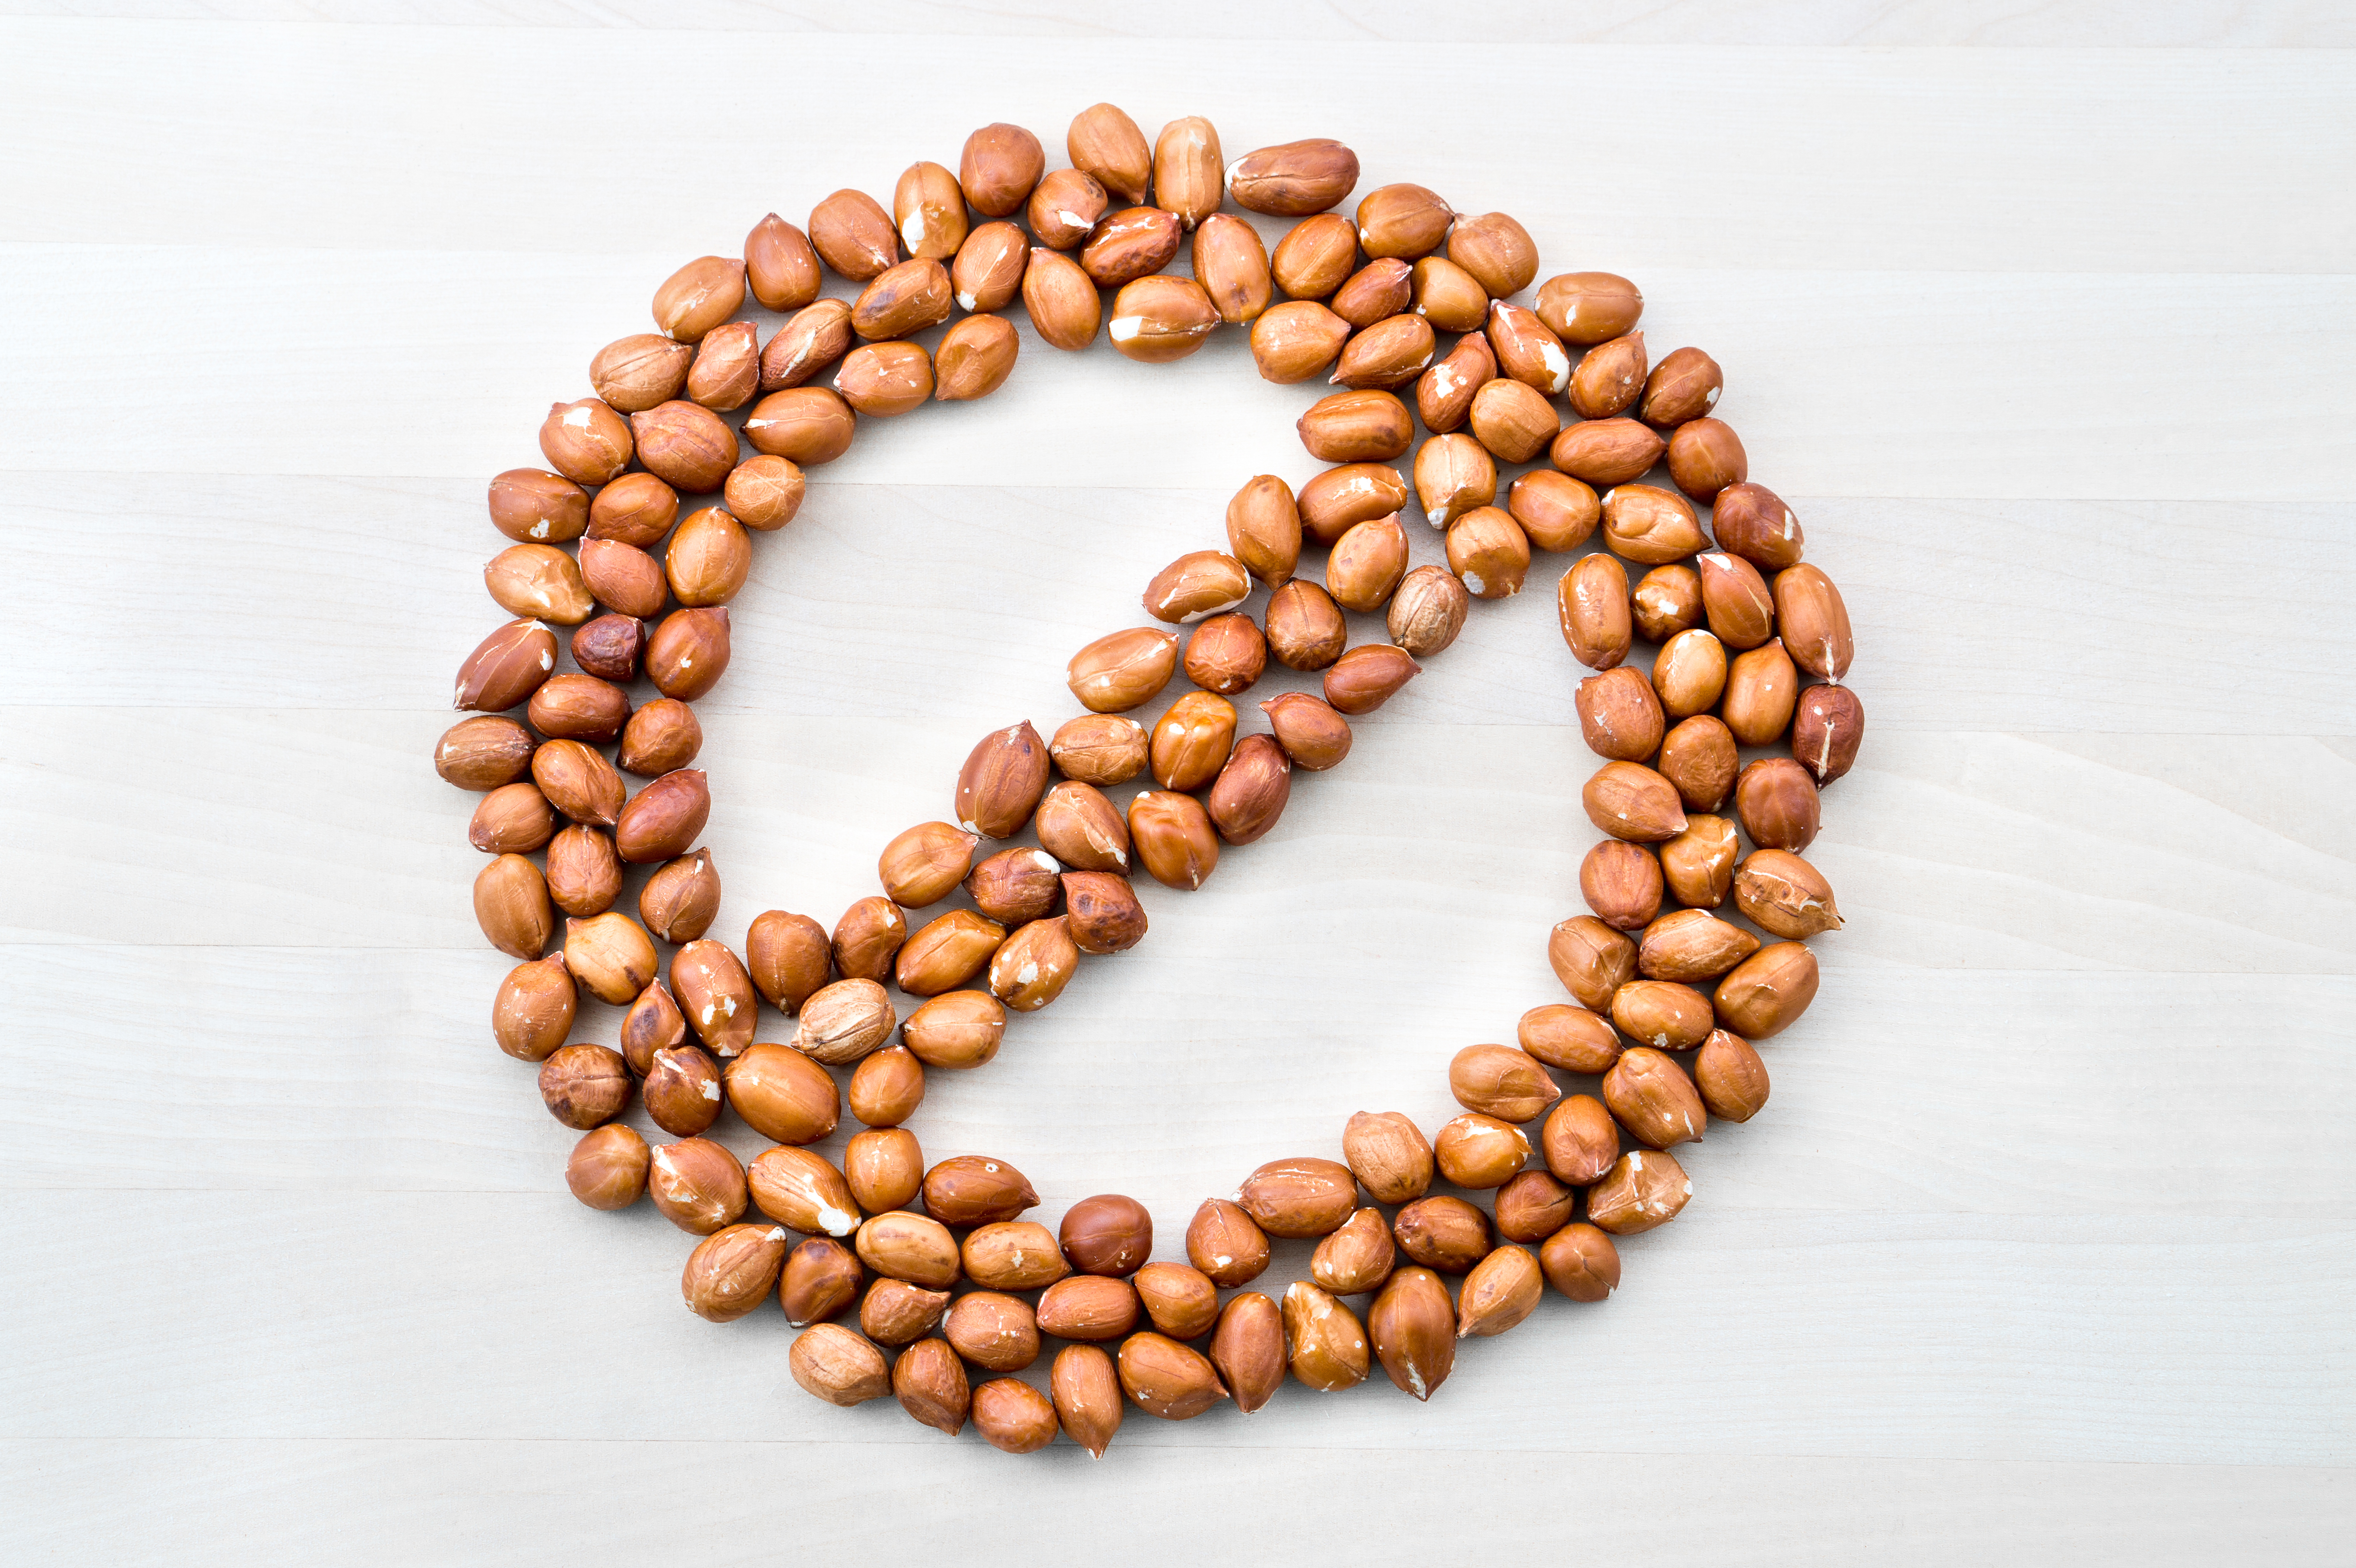 Nuts arranged in a stop sign image